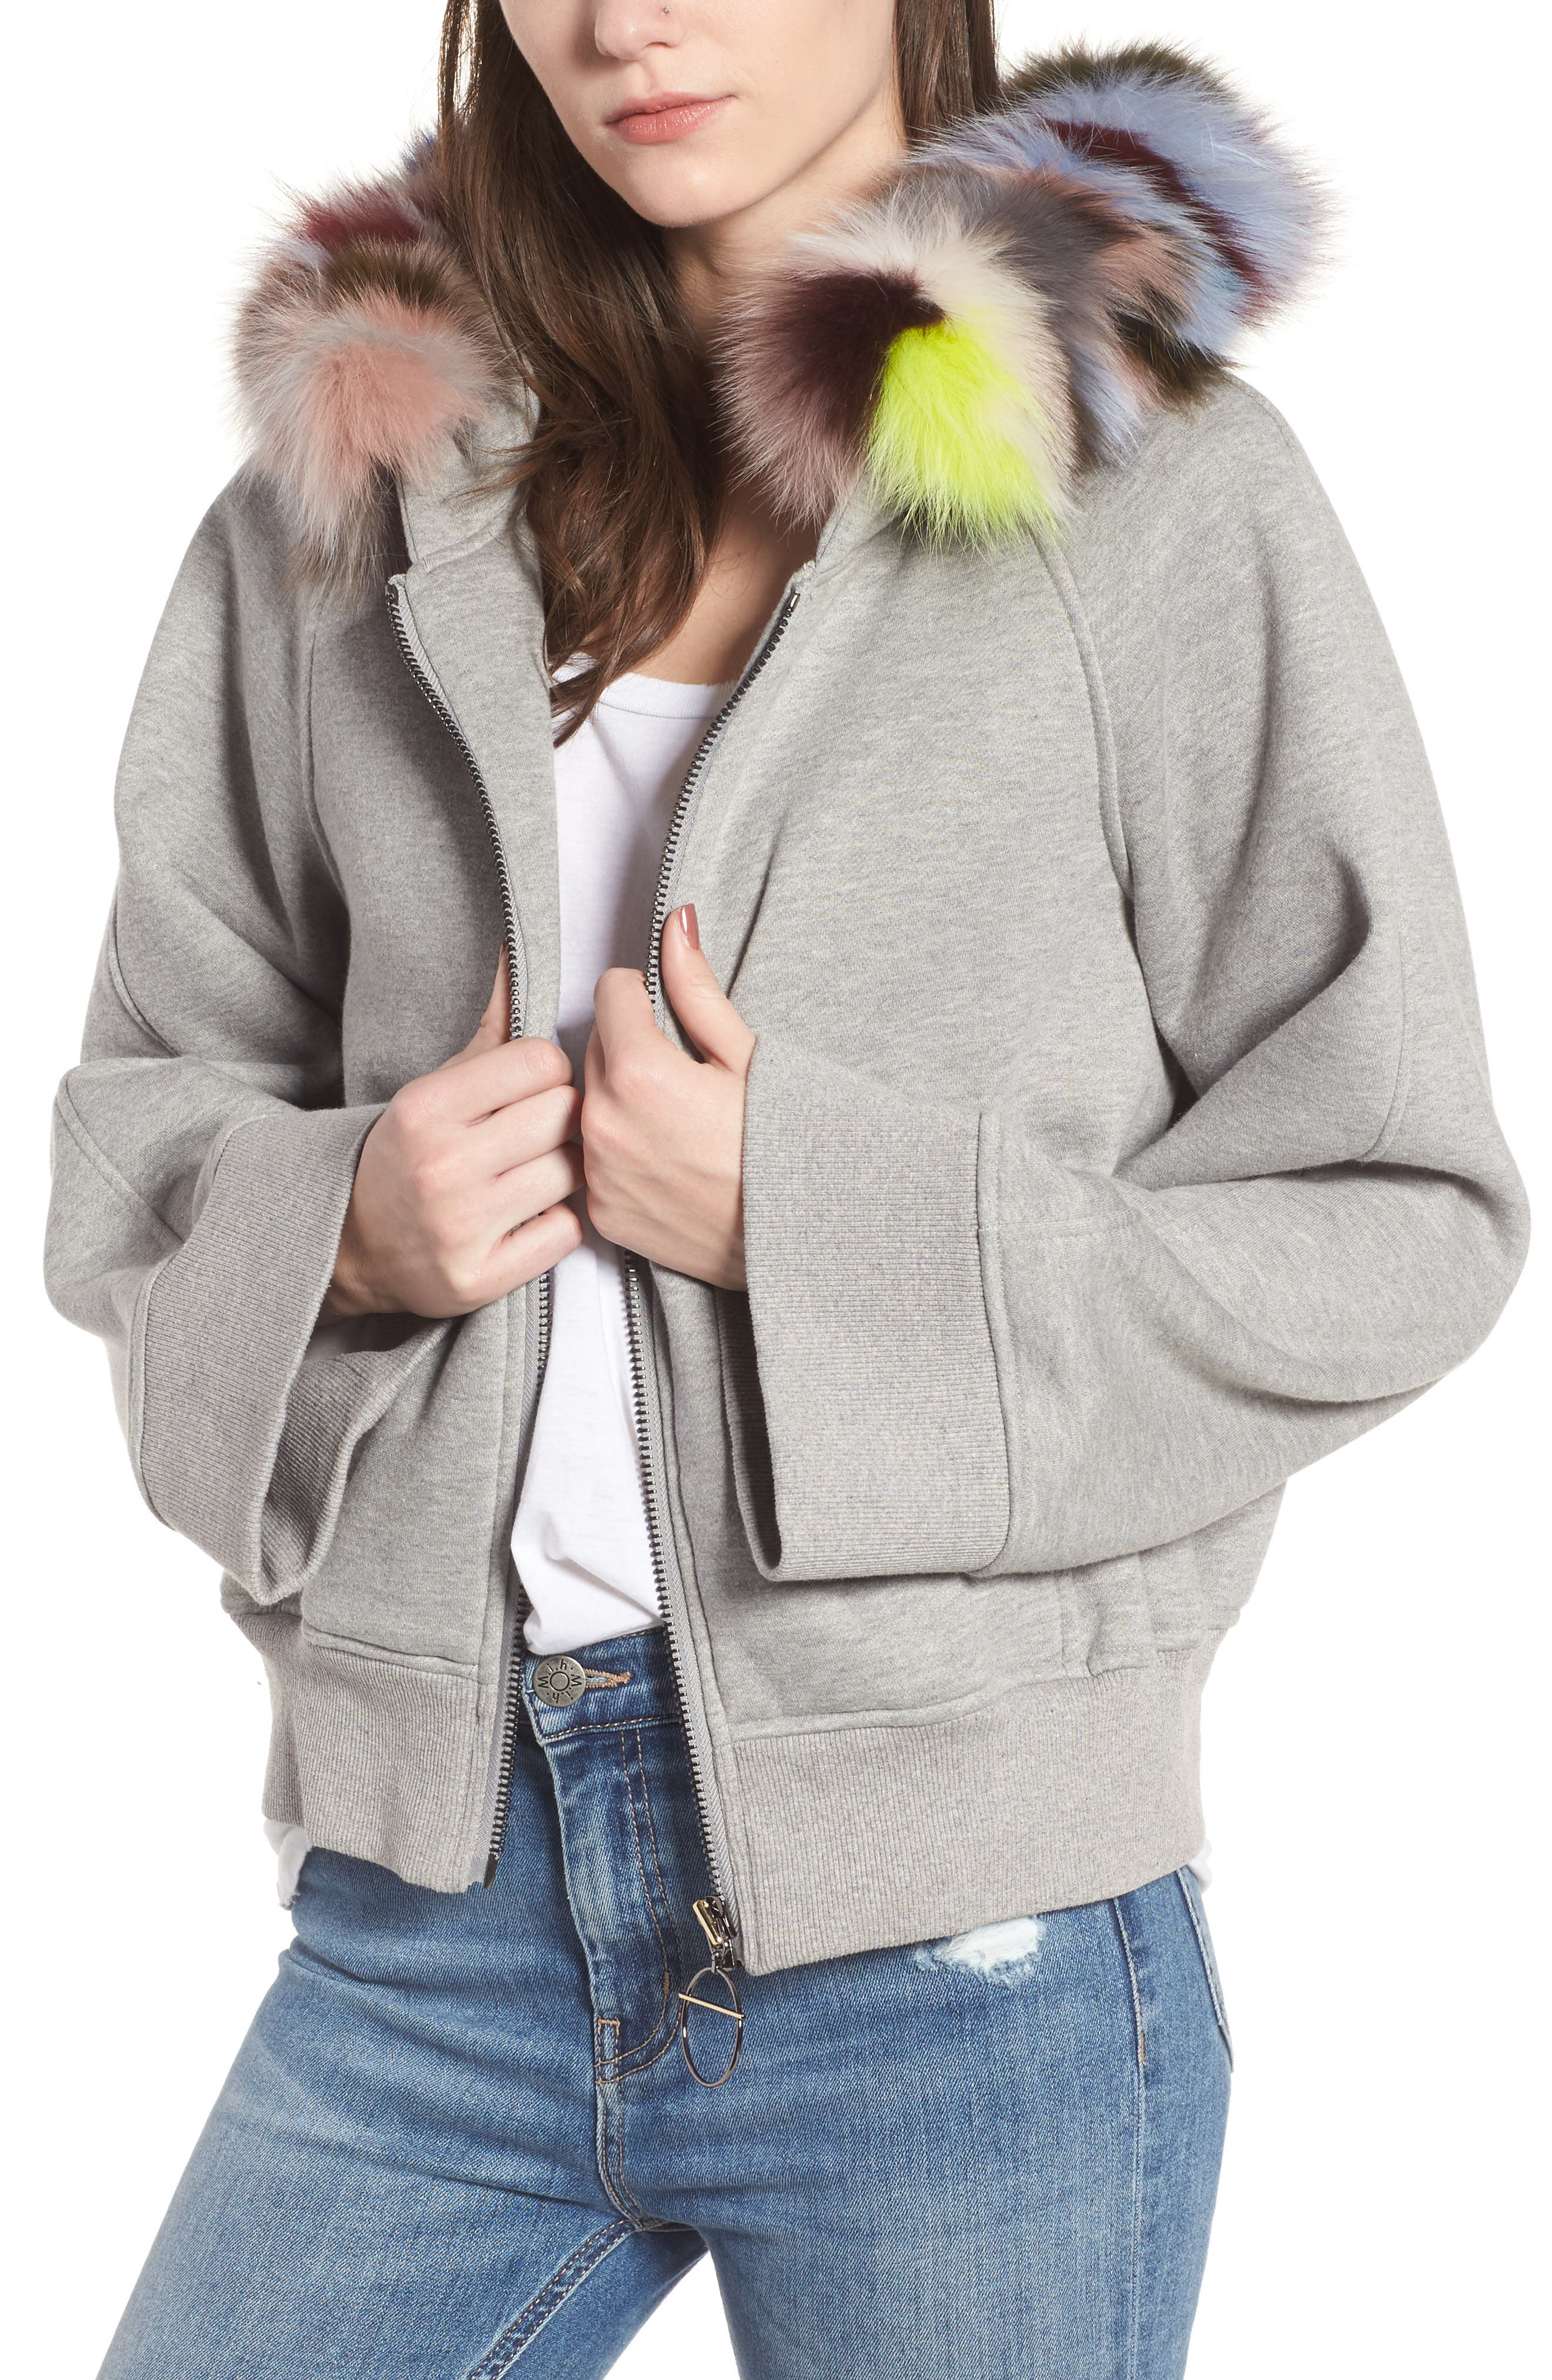 Alternate Image 1 Selected - BAGATELLE.CITY The Luxe Hooded Jacket with Genuine Fox Fur Trim